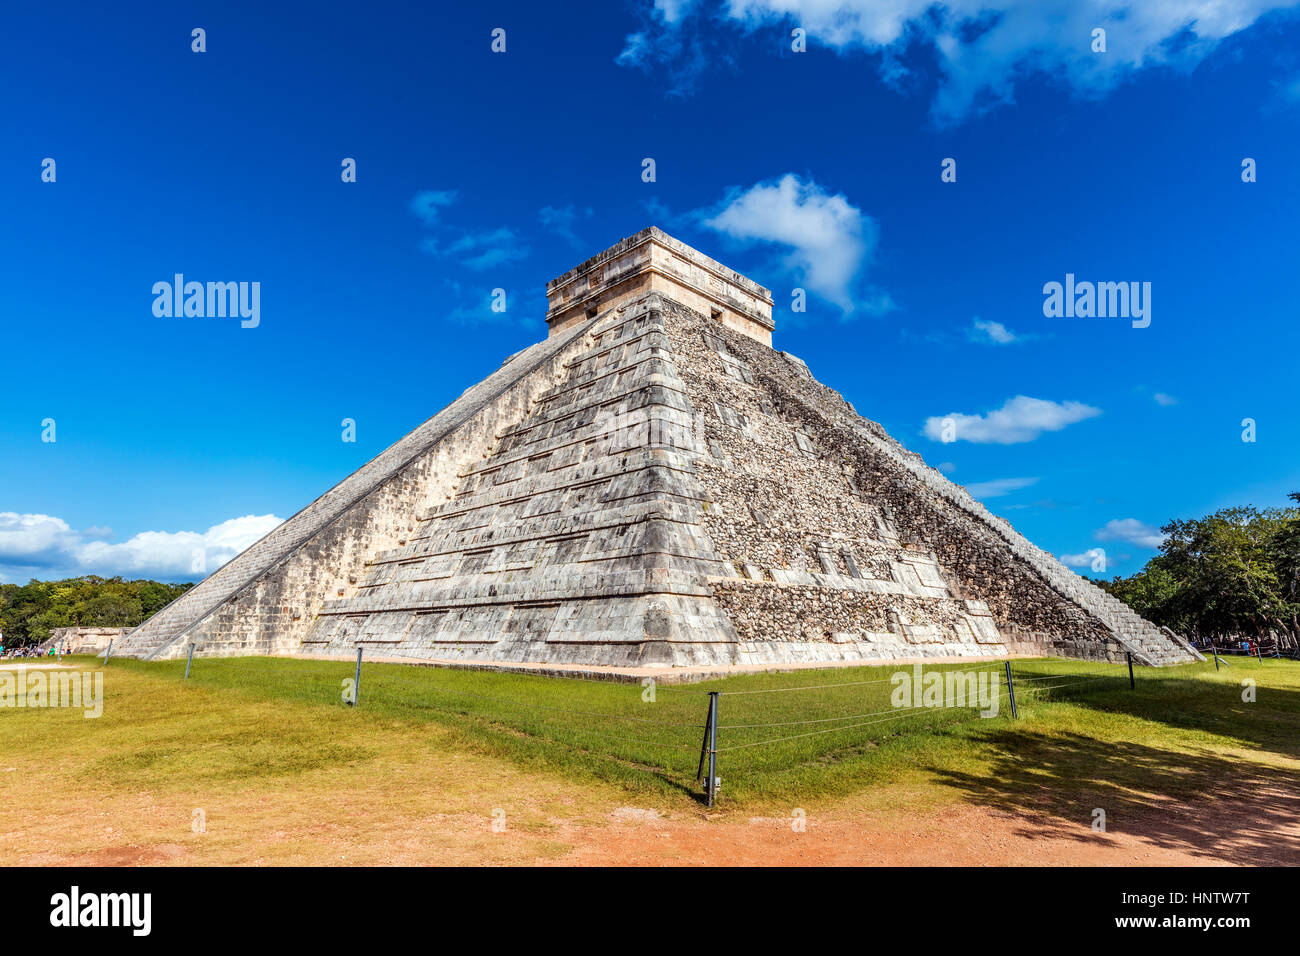 Stock Photo - Templo de Kukulcán en Chichén Itzá, México Foto de stock